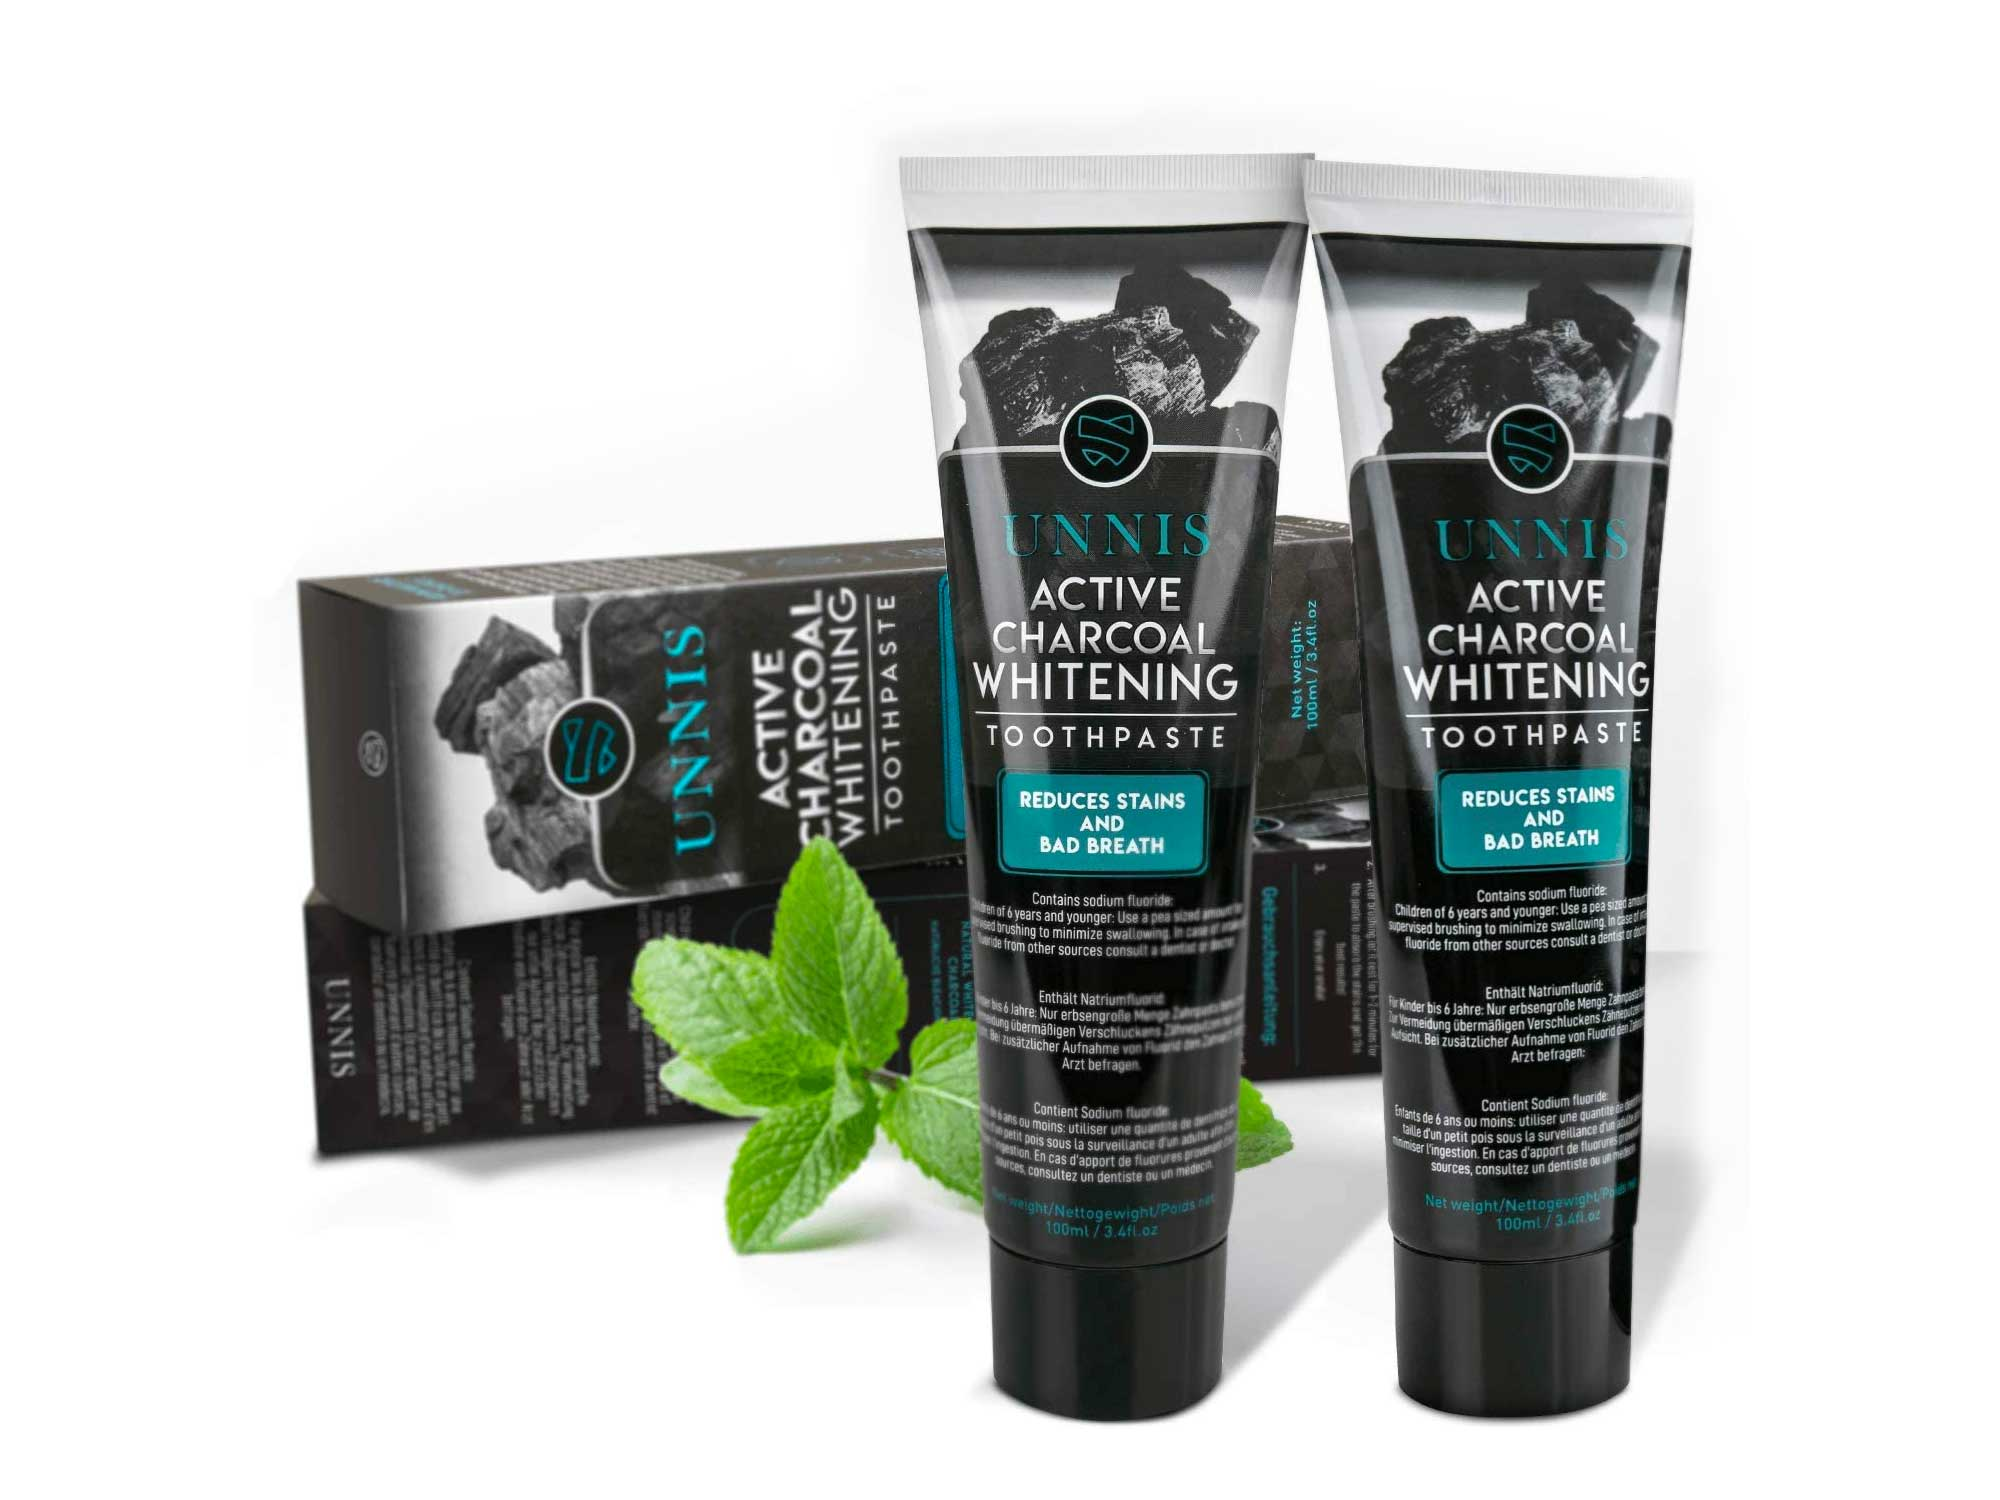 Activated Charcoal Teeth Whitening Toothpaste 2 Pack Active Natural Teeth Whitening Toothpastes